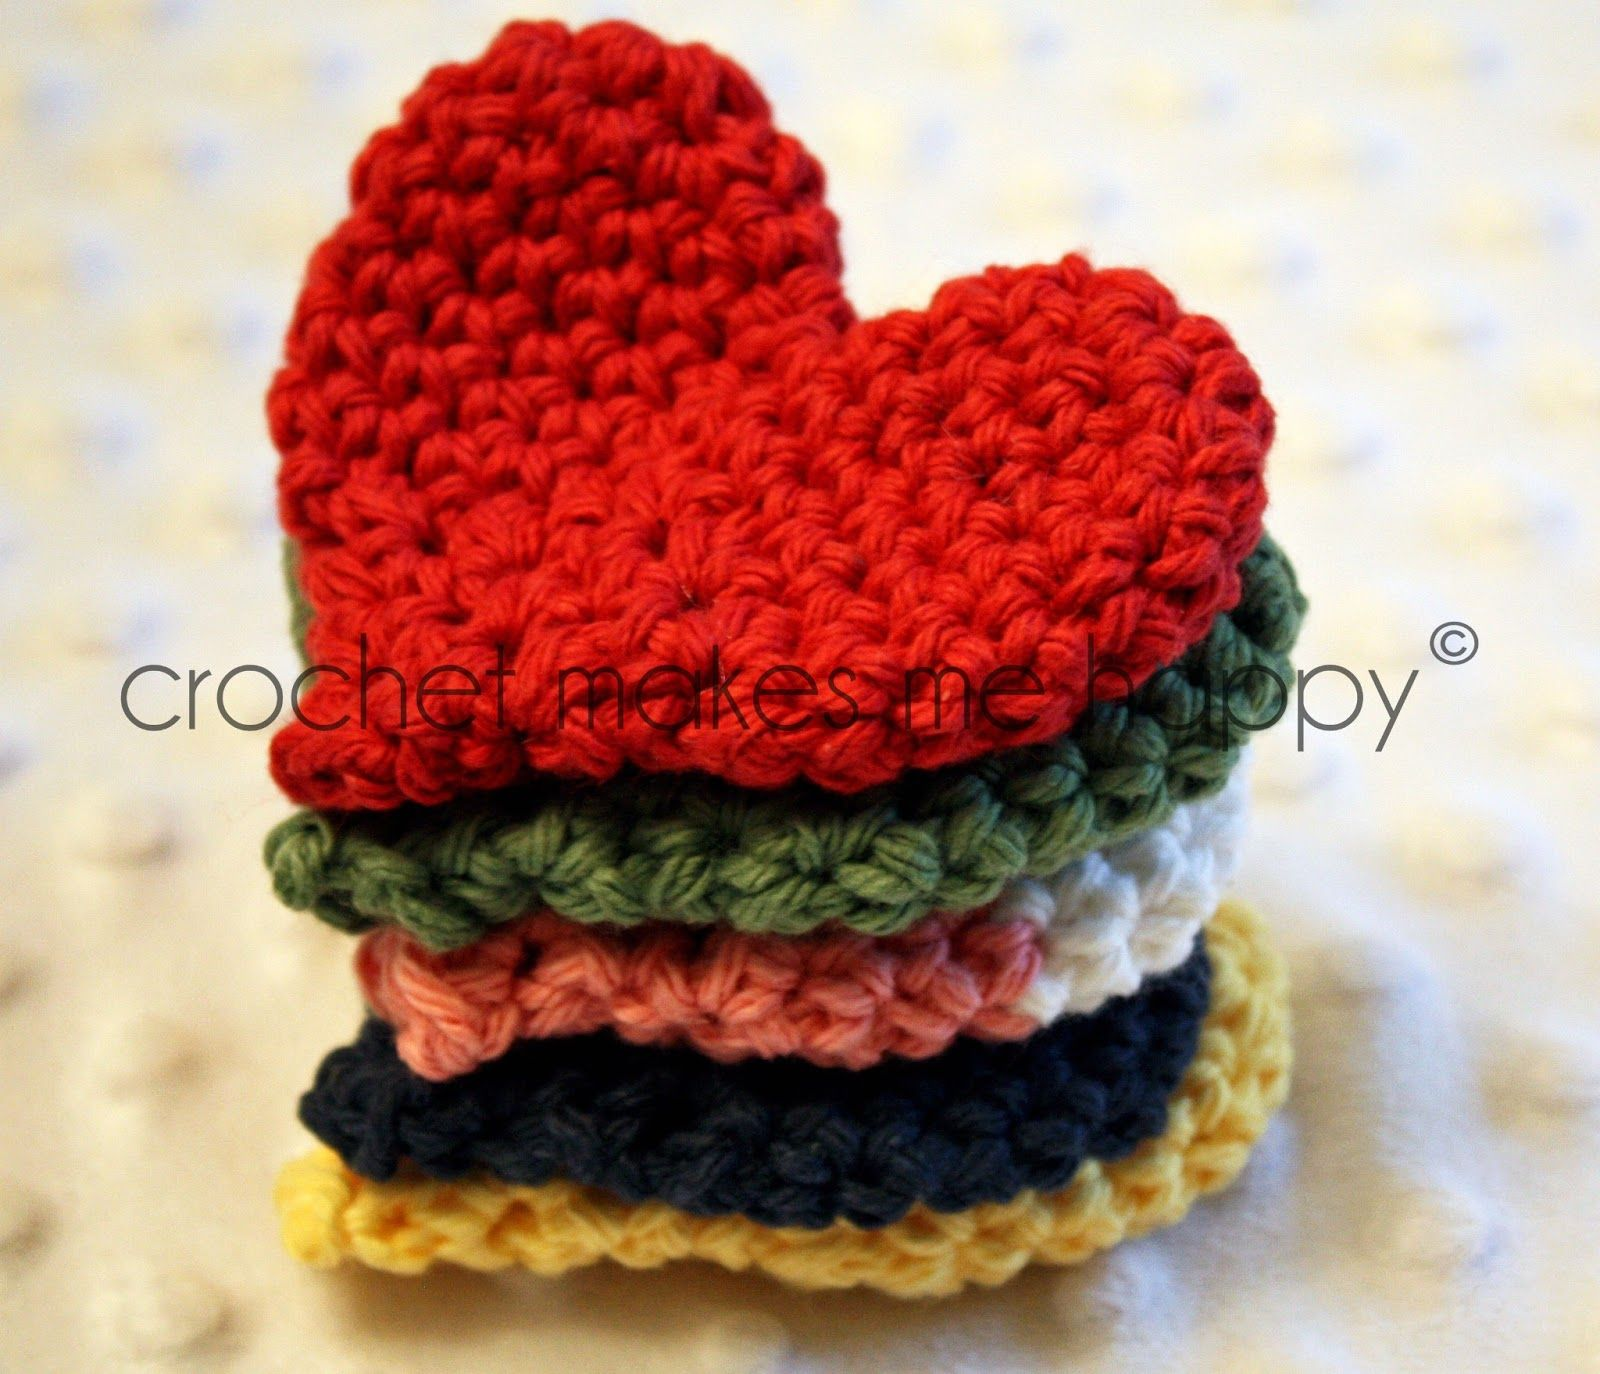 Crochet makes me happy crochet pattern the heart crochet crochet makes me happy crochet heart tutorial bankloansurffo Images